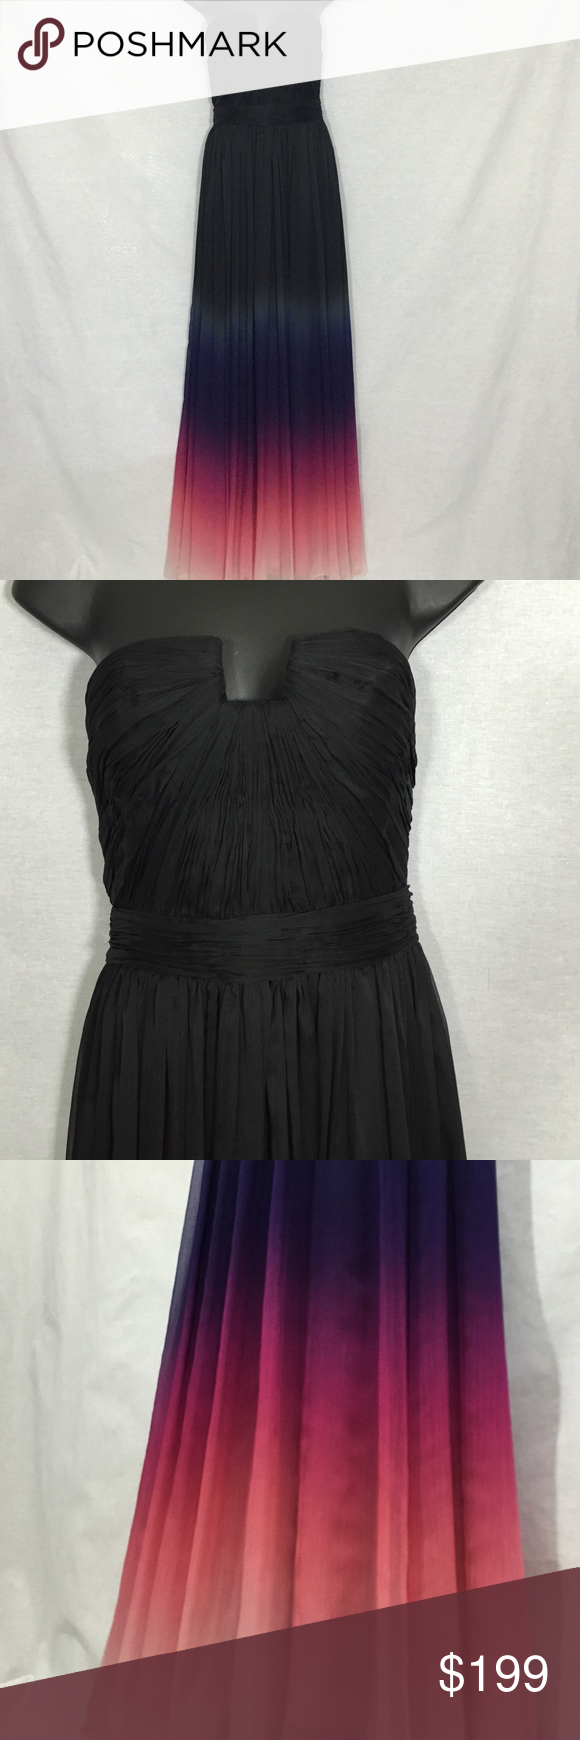 Gorgeous halston ombré gown nwt halston heritage black tie and